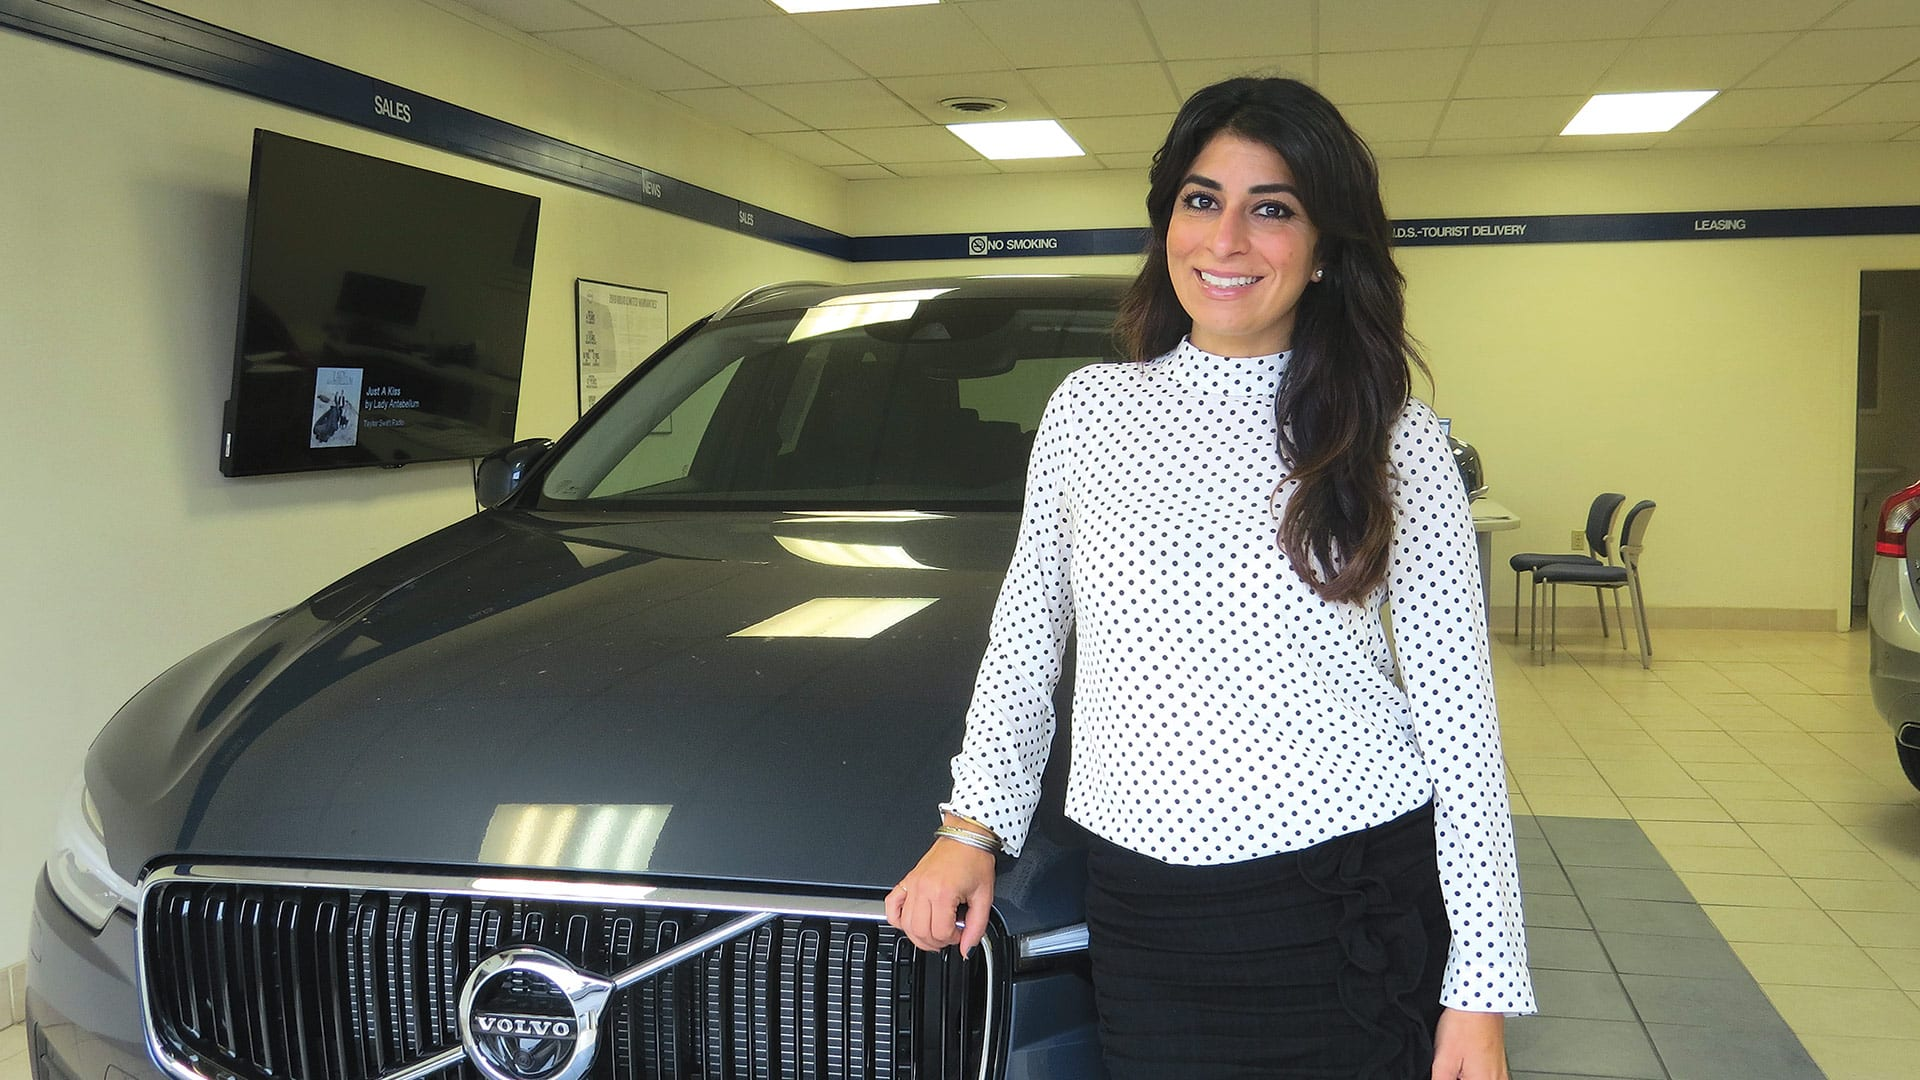 Carla Cosenzi says the recently acquired Volvo dealership in South Deerfield is a perfect fit for the TommyCar Auto group.